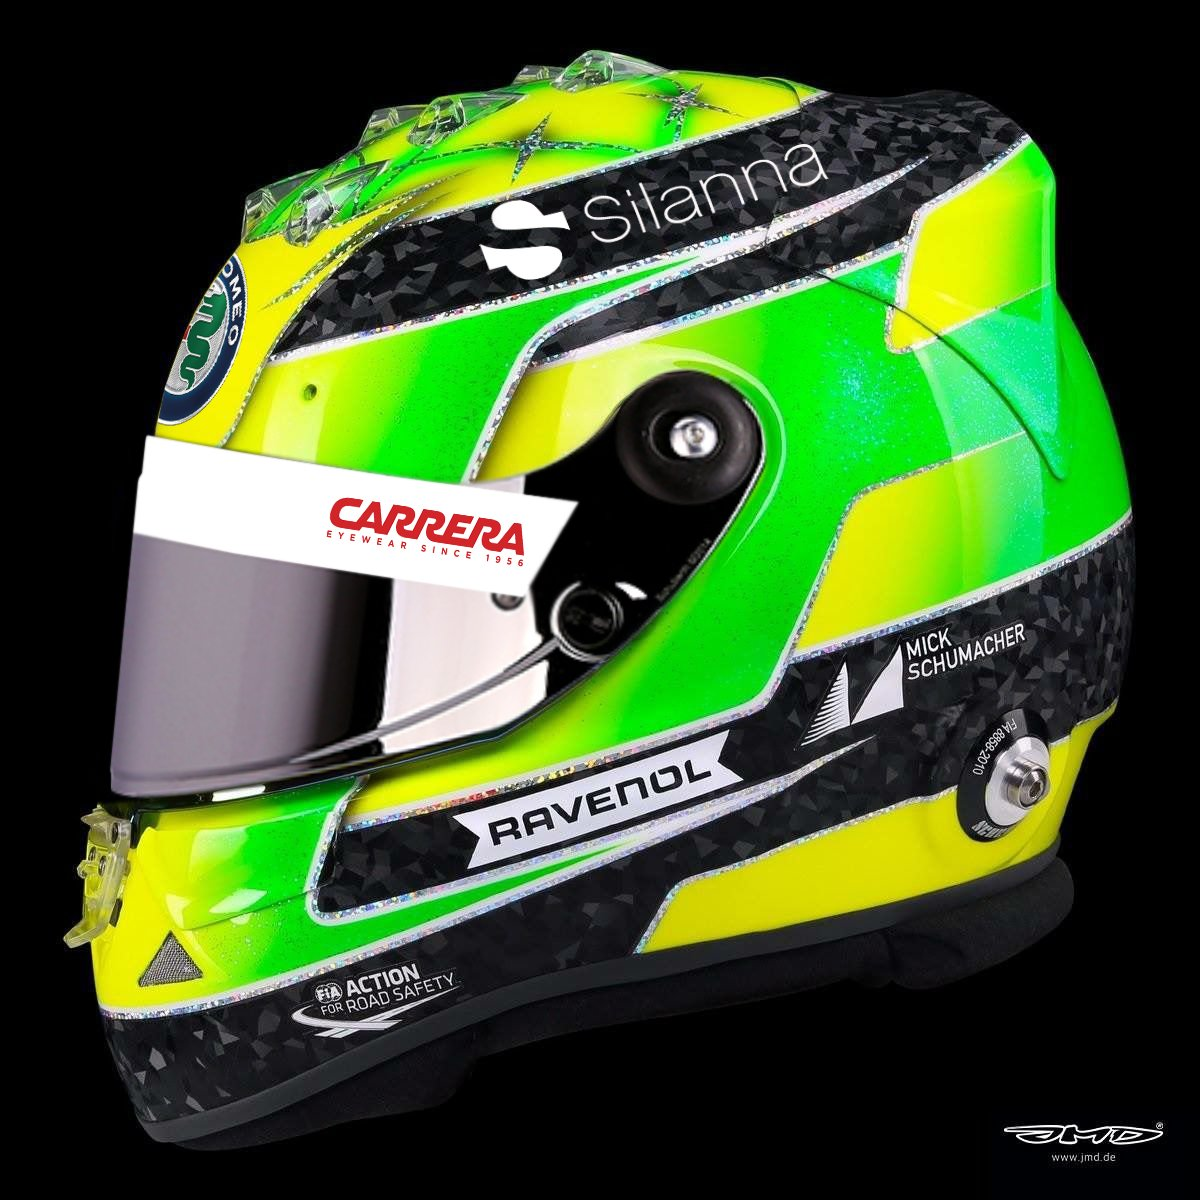 F1 Helmets On Twitter Mick Schumacher Will Probably Be In Ferrari Driver Academy This Year Maybe In Year Or Two We Could See This Sauberf1team Schumachermick Https T Co Fjrf2nlkrd